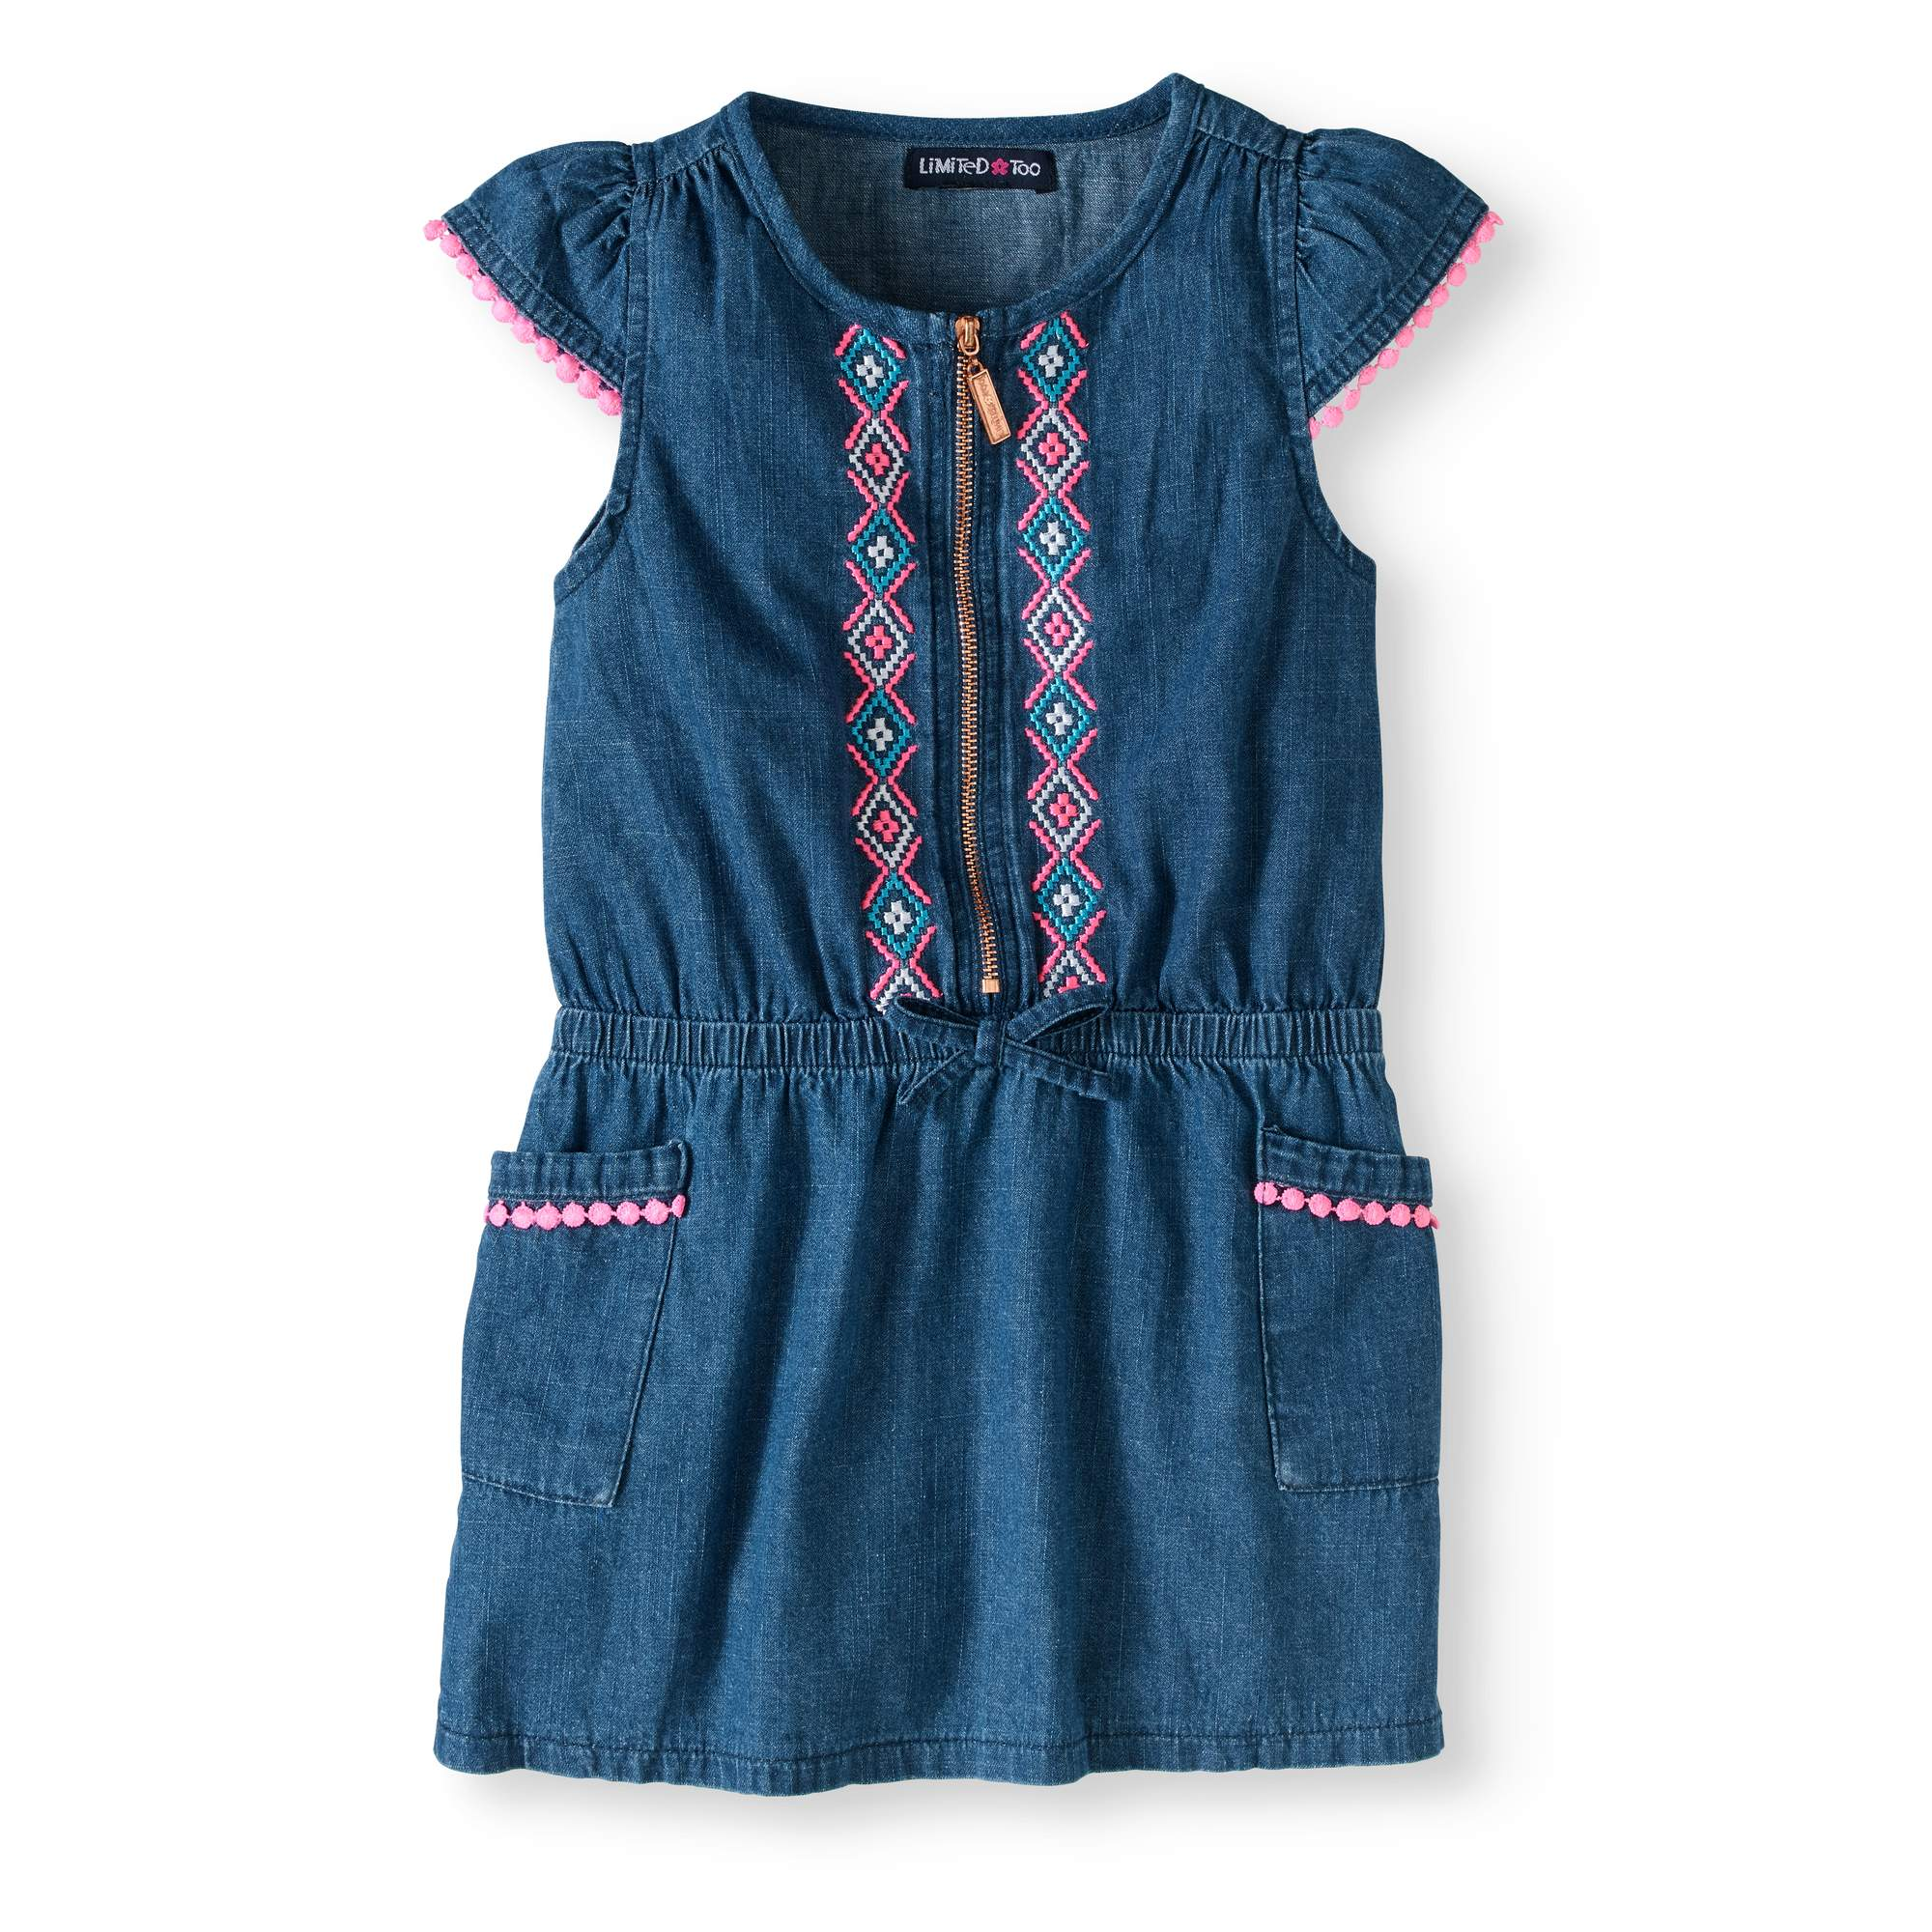 04a873f16 Limited Too - Toddler Girls  Embroidered Denim Dress - Walmart.com